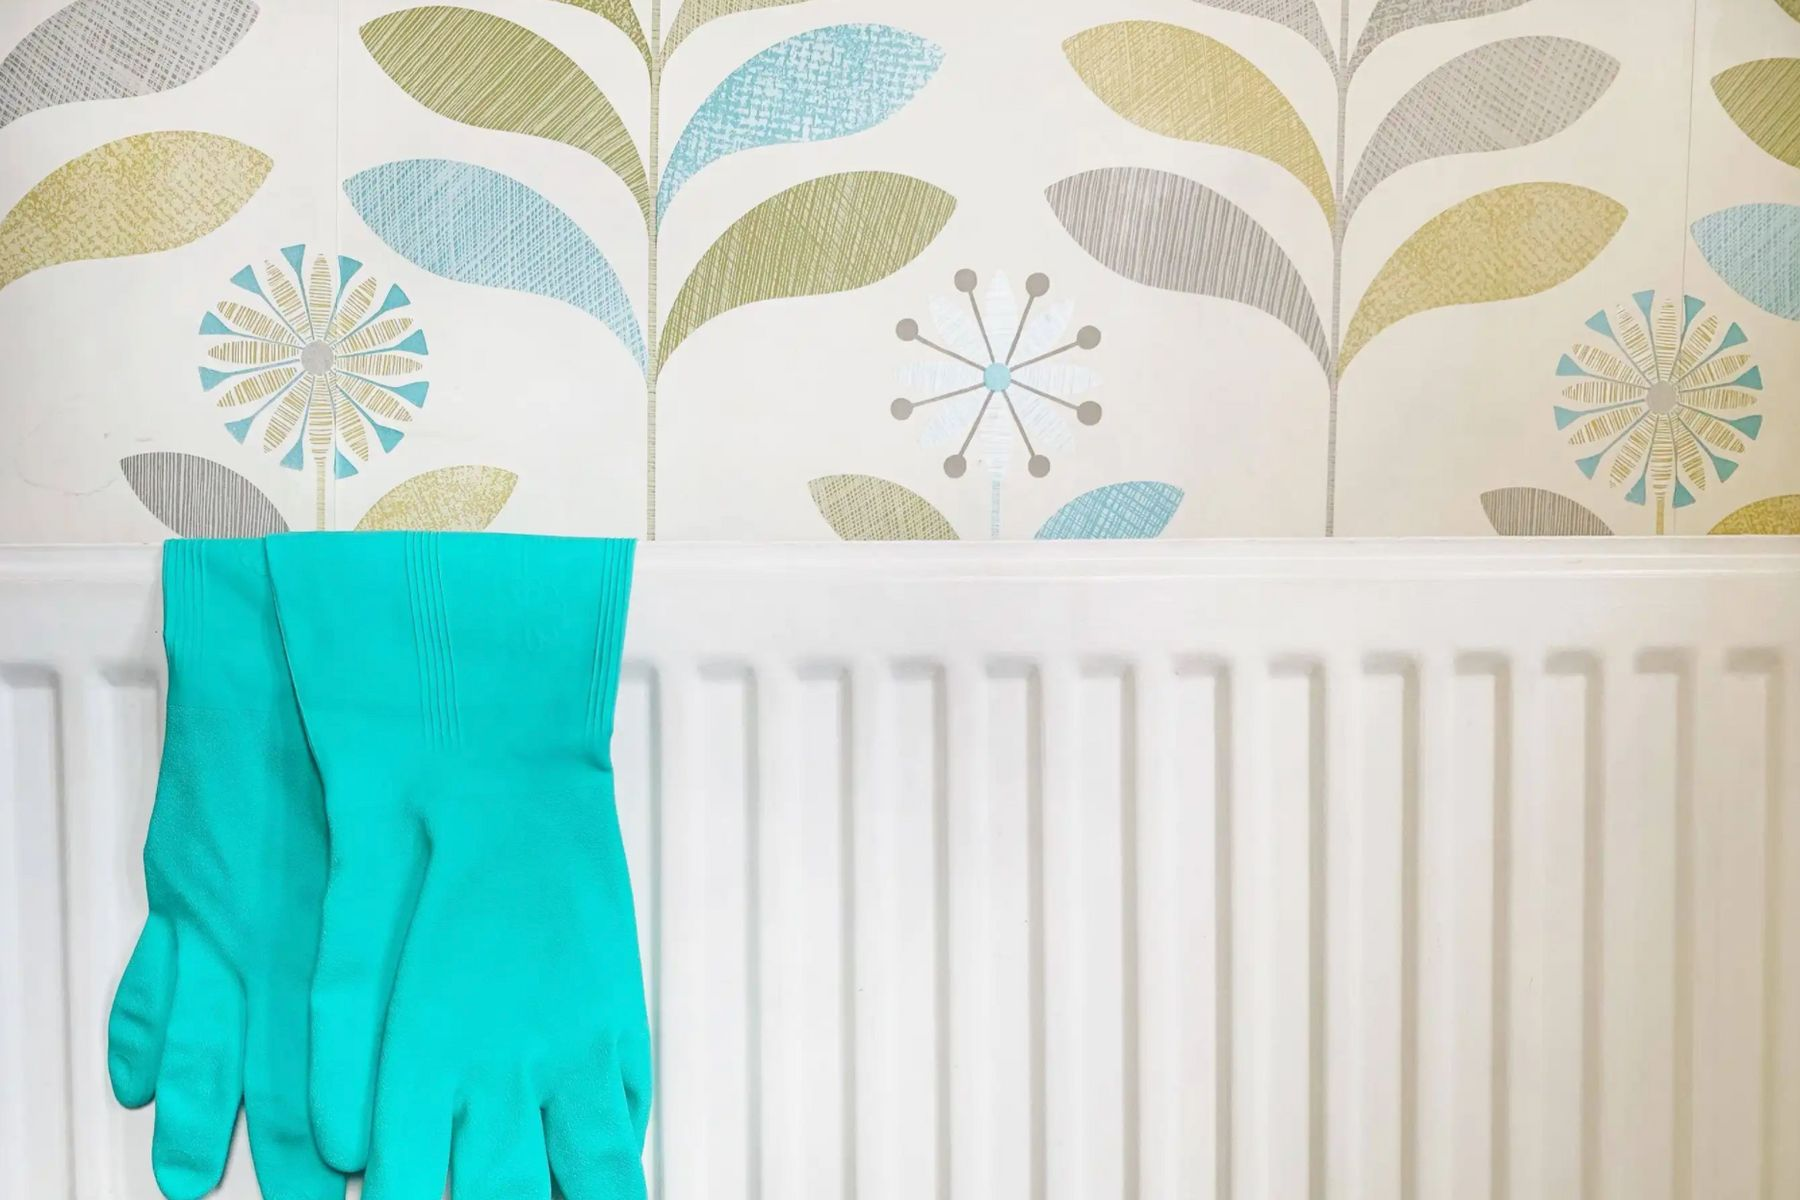 White radiator with a pair of green gloves